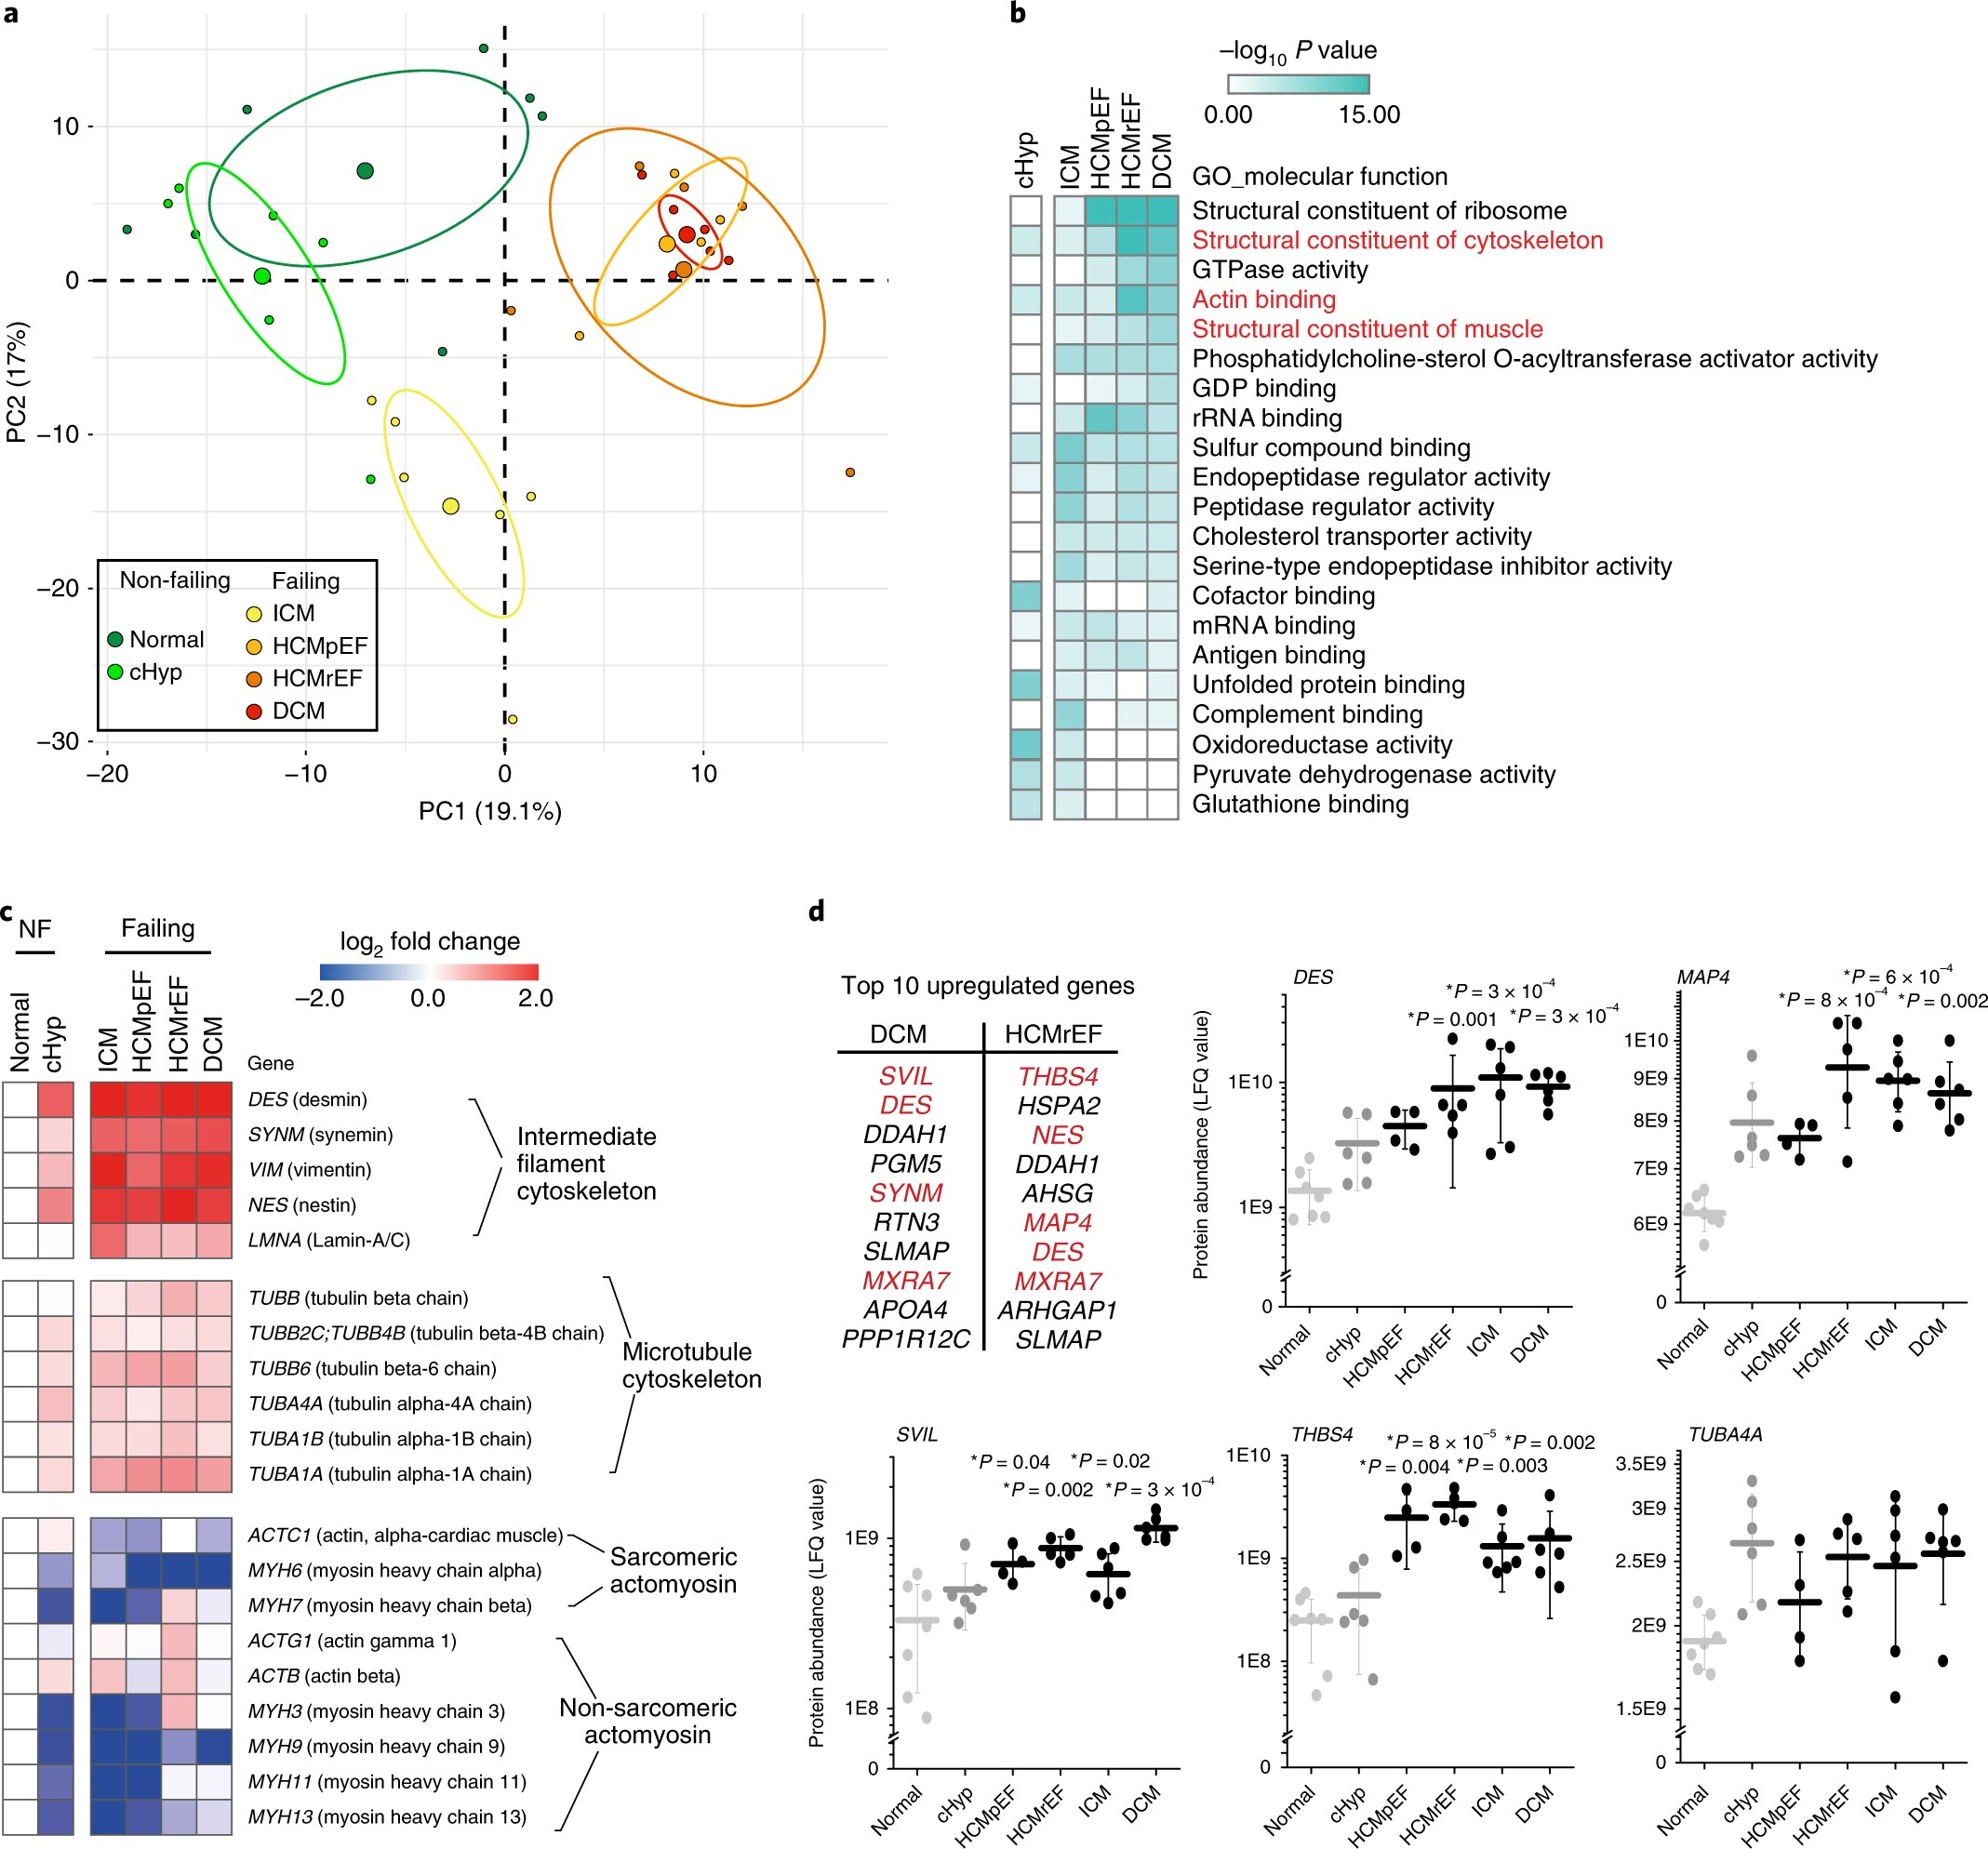 Suppression Of Detyrosinated Microtubules Improves Cardiomyocyte Thread Wj Vacuum Diagram Function In Human Heart Failure Nature Medicine